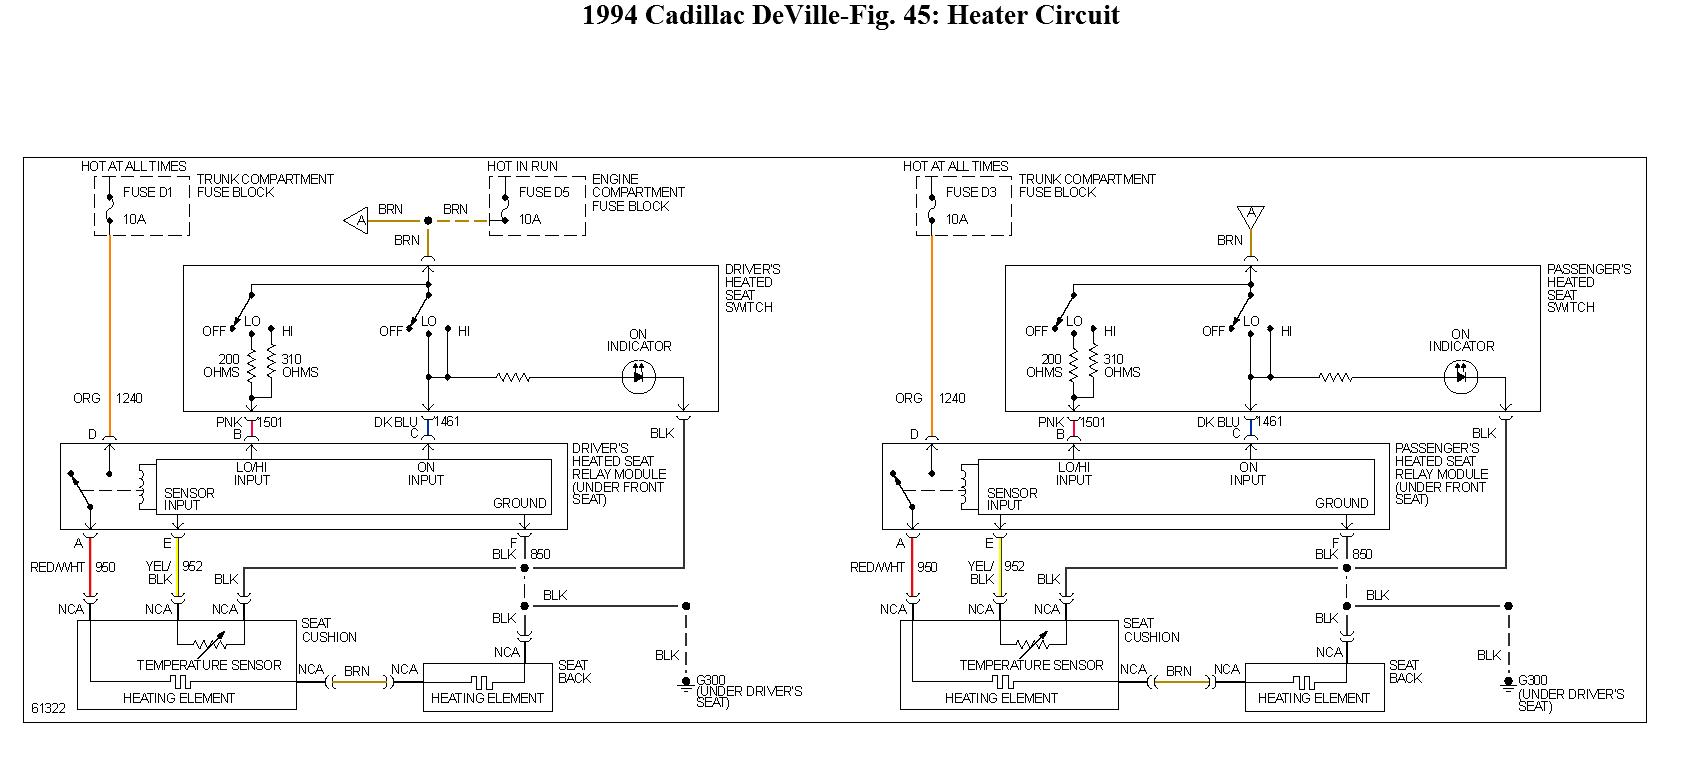 Fuse Box 1994 Cadillac Deville Wiring Library 2004 Diagram Question 5 60 Amp Maxifuse Controls